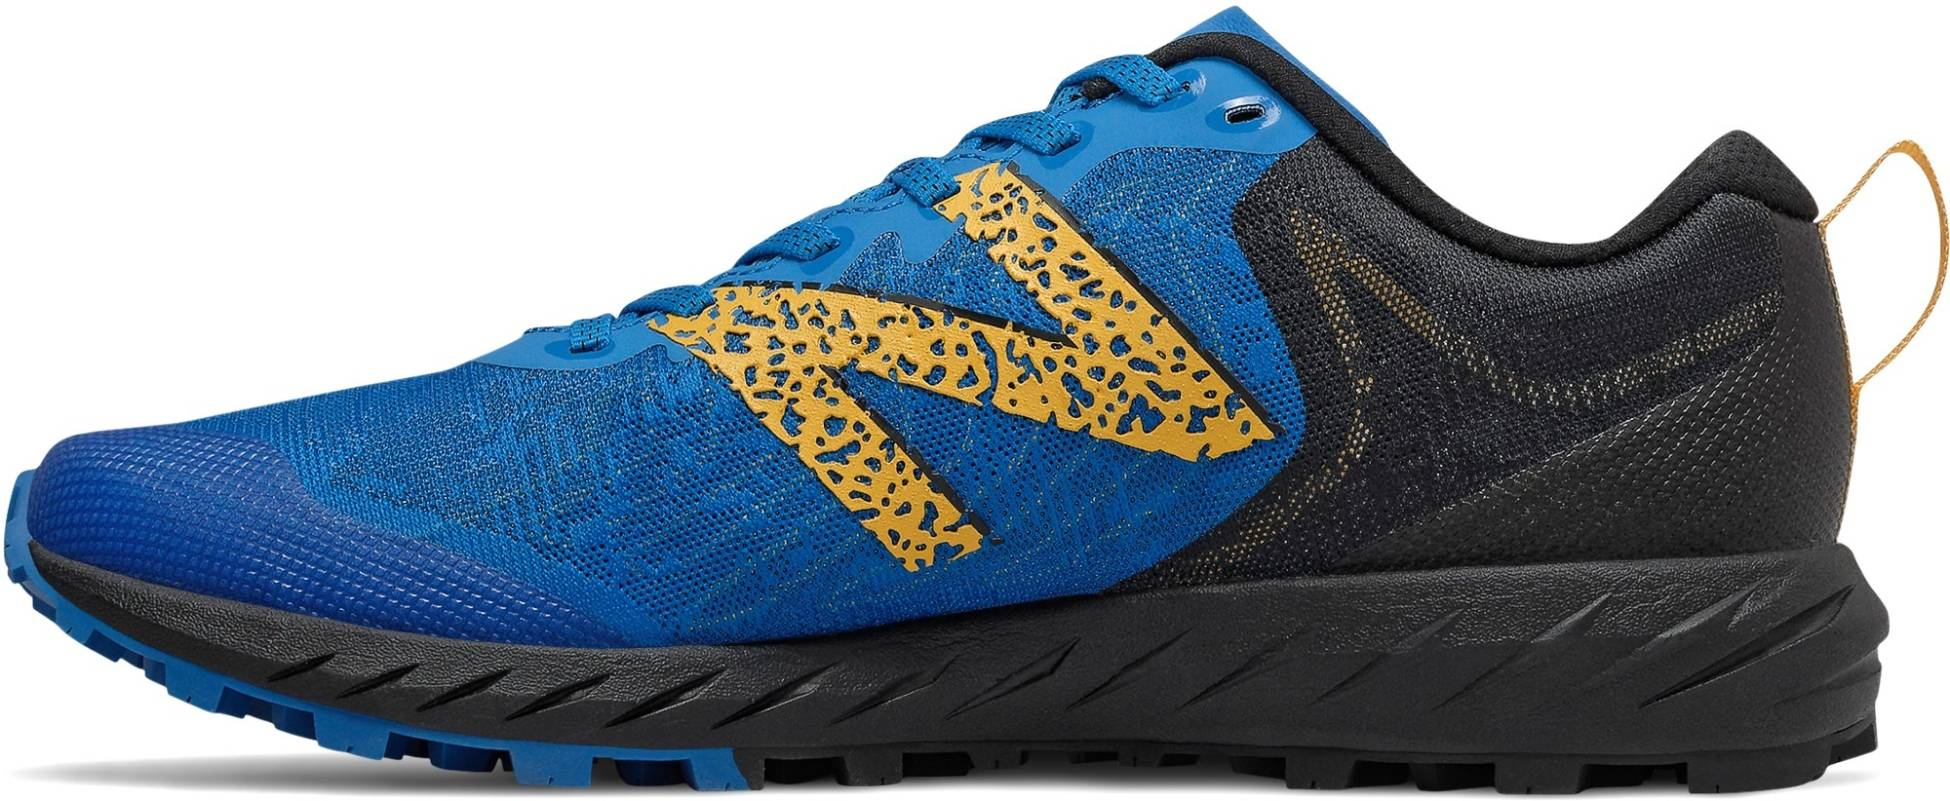 New Balance Summit Unknown v2 - Deals ($75), Facts, Reviews (2021 ...